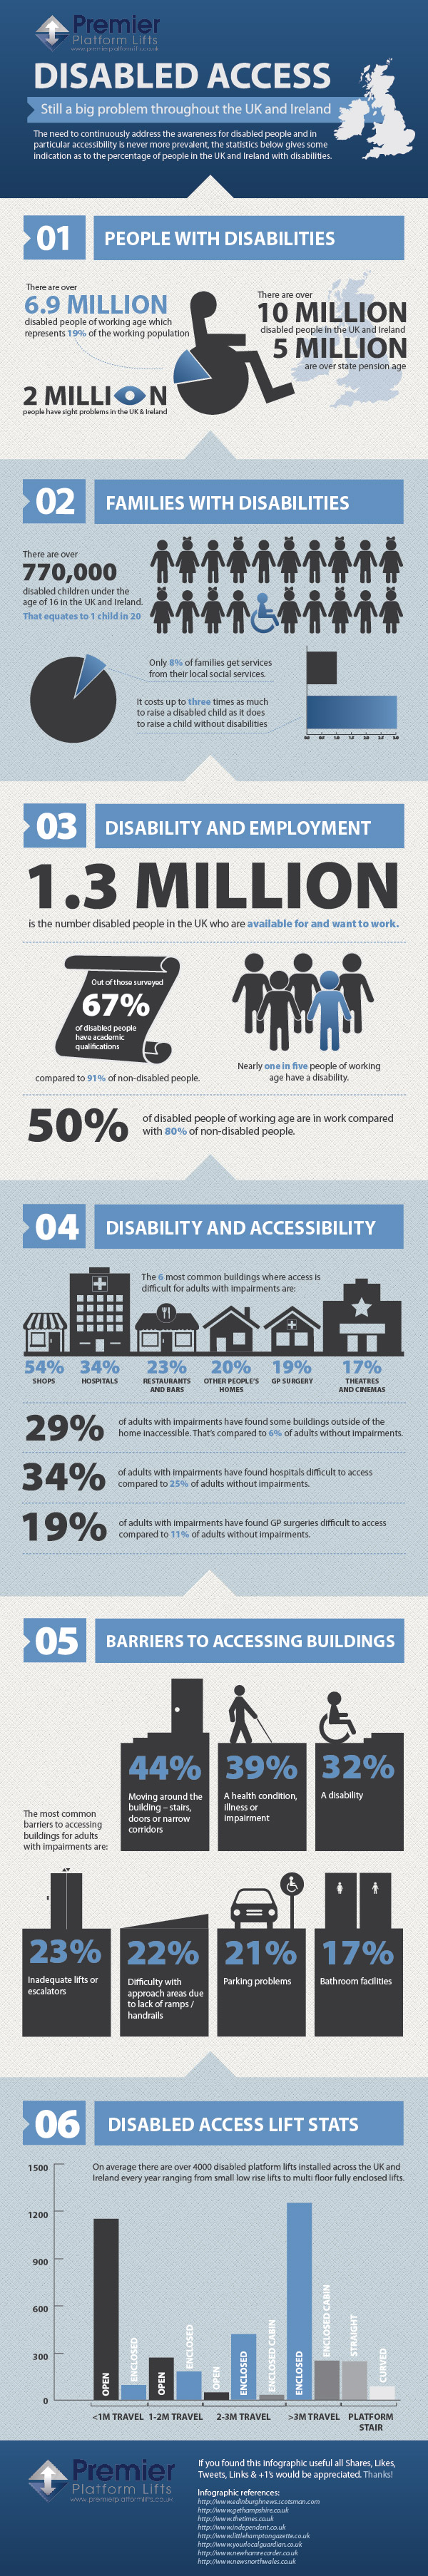 Disabled access still a major problem